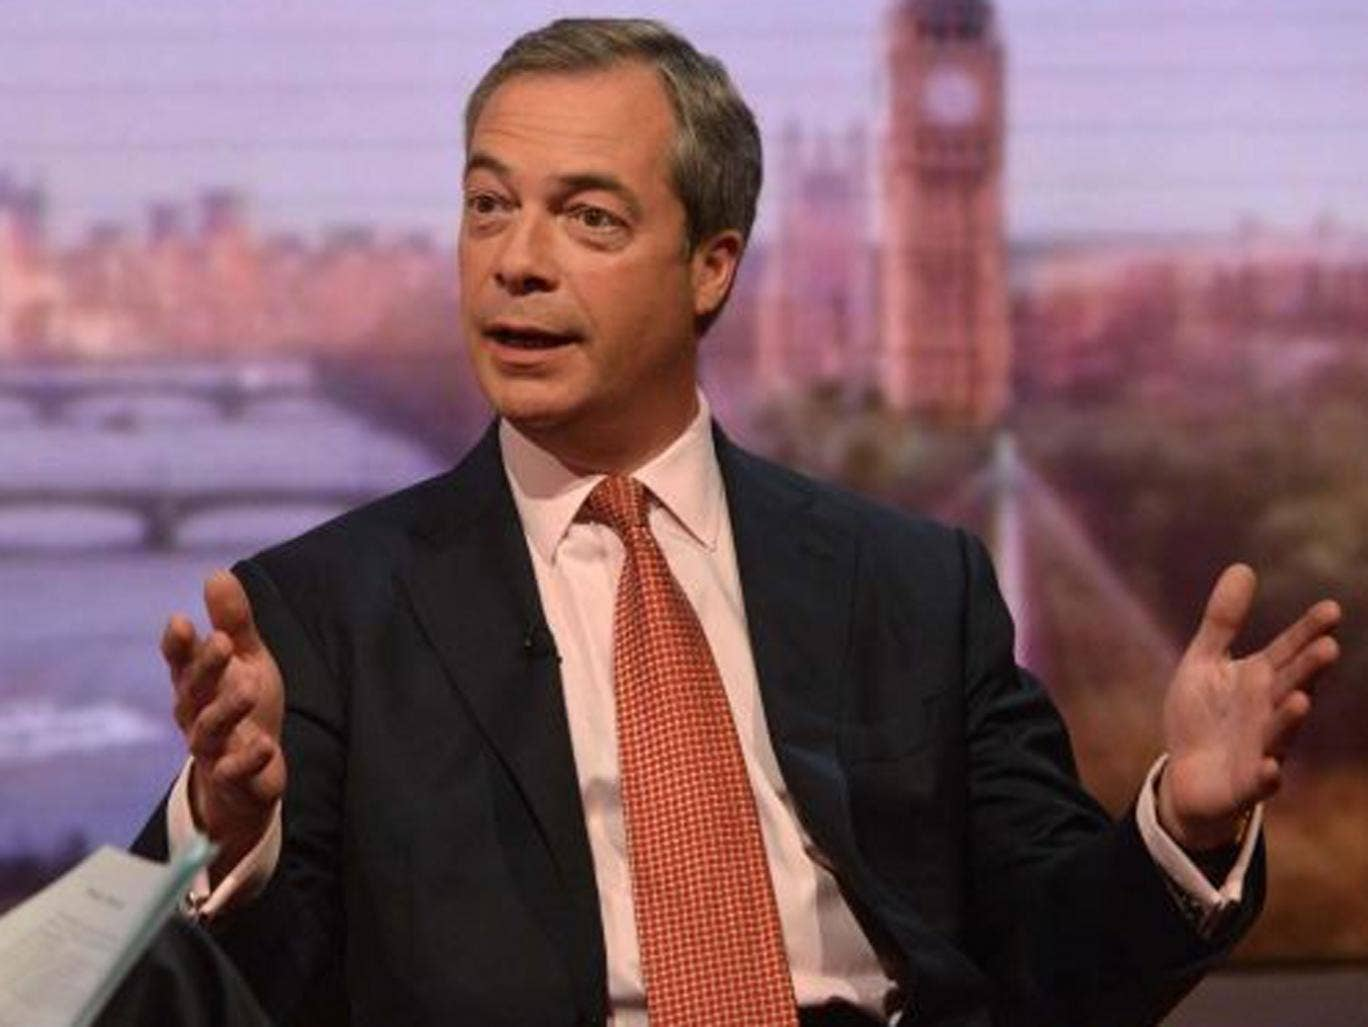 UKIP leader Nigel Farage confirmed he will stand in the 2015 general election